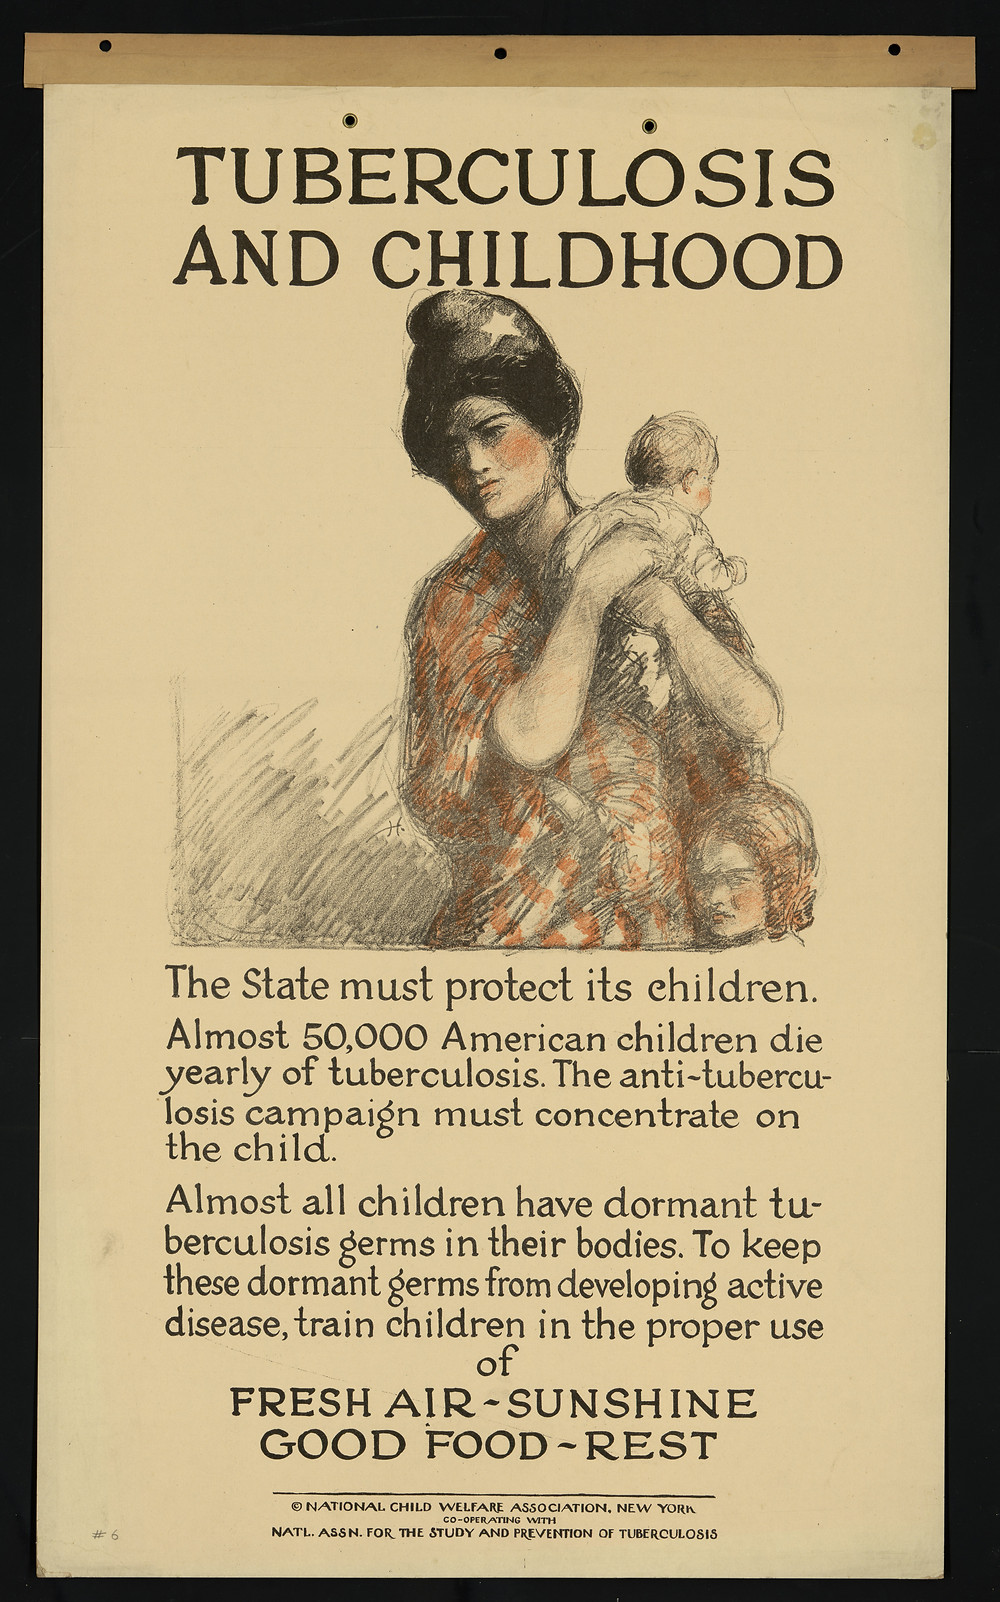 1920s public health poster on TB.